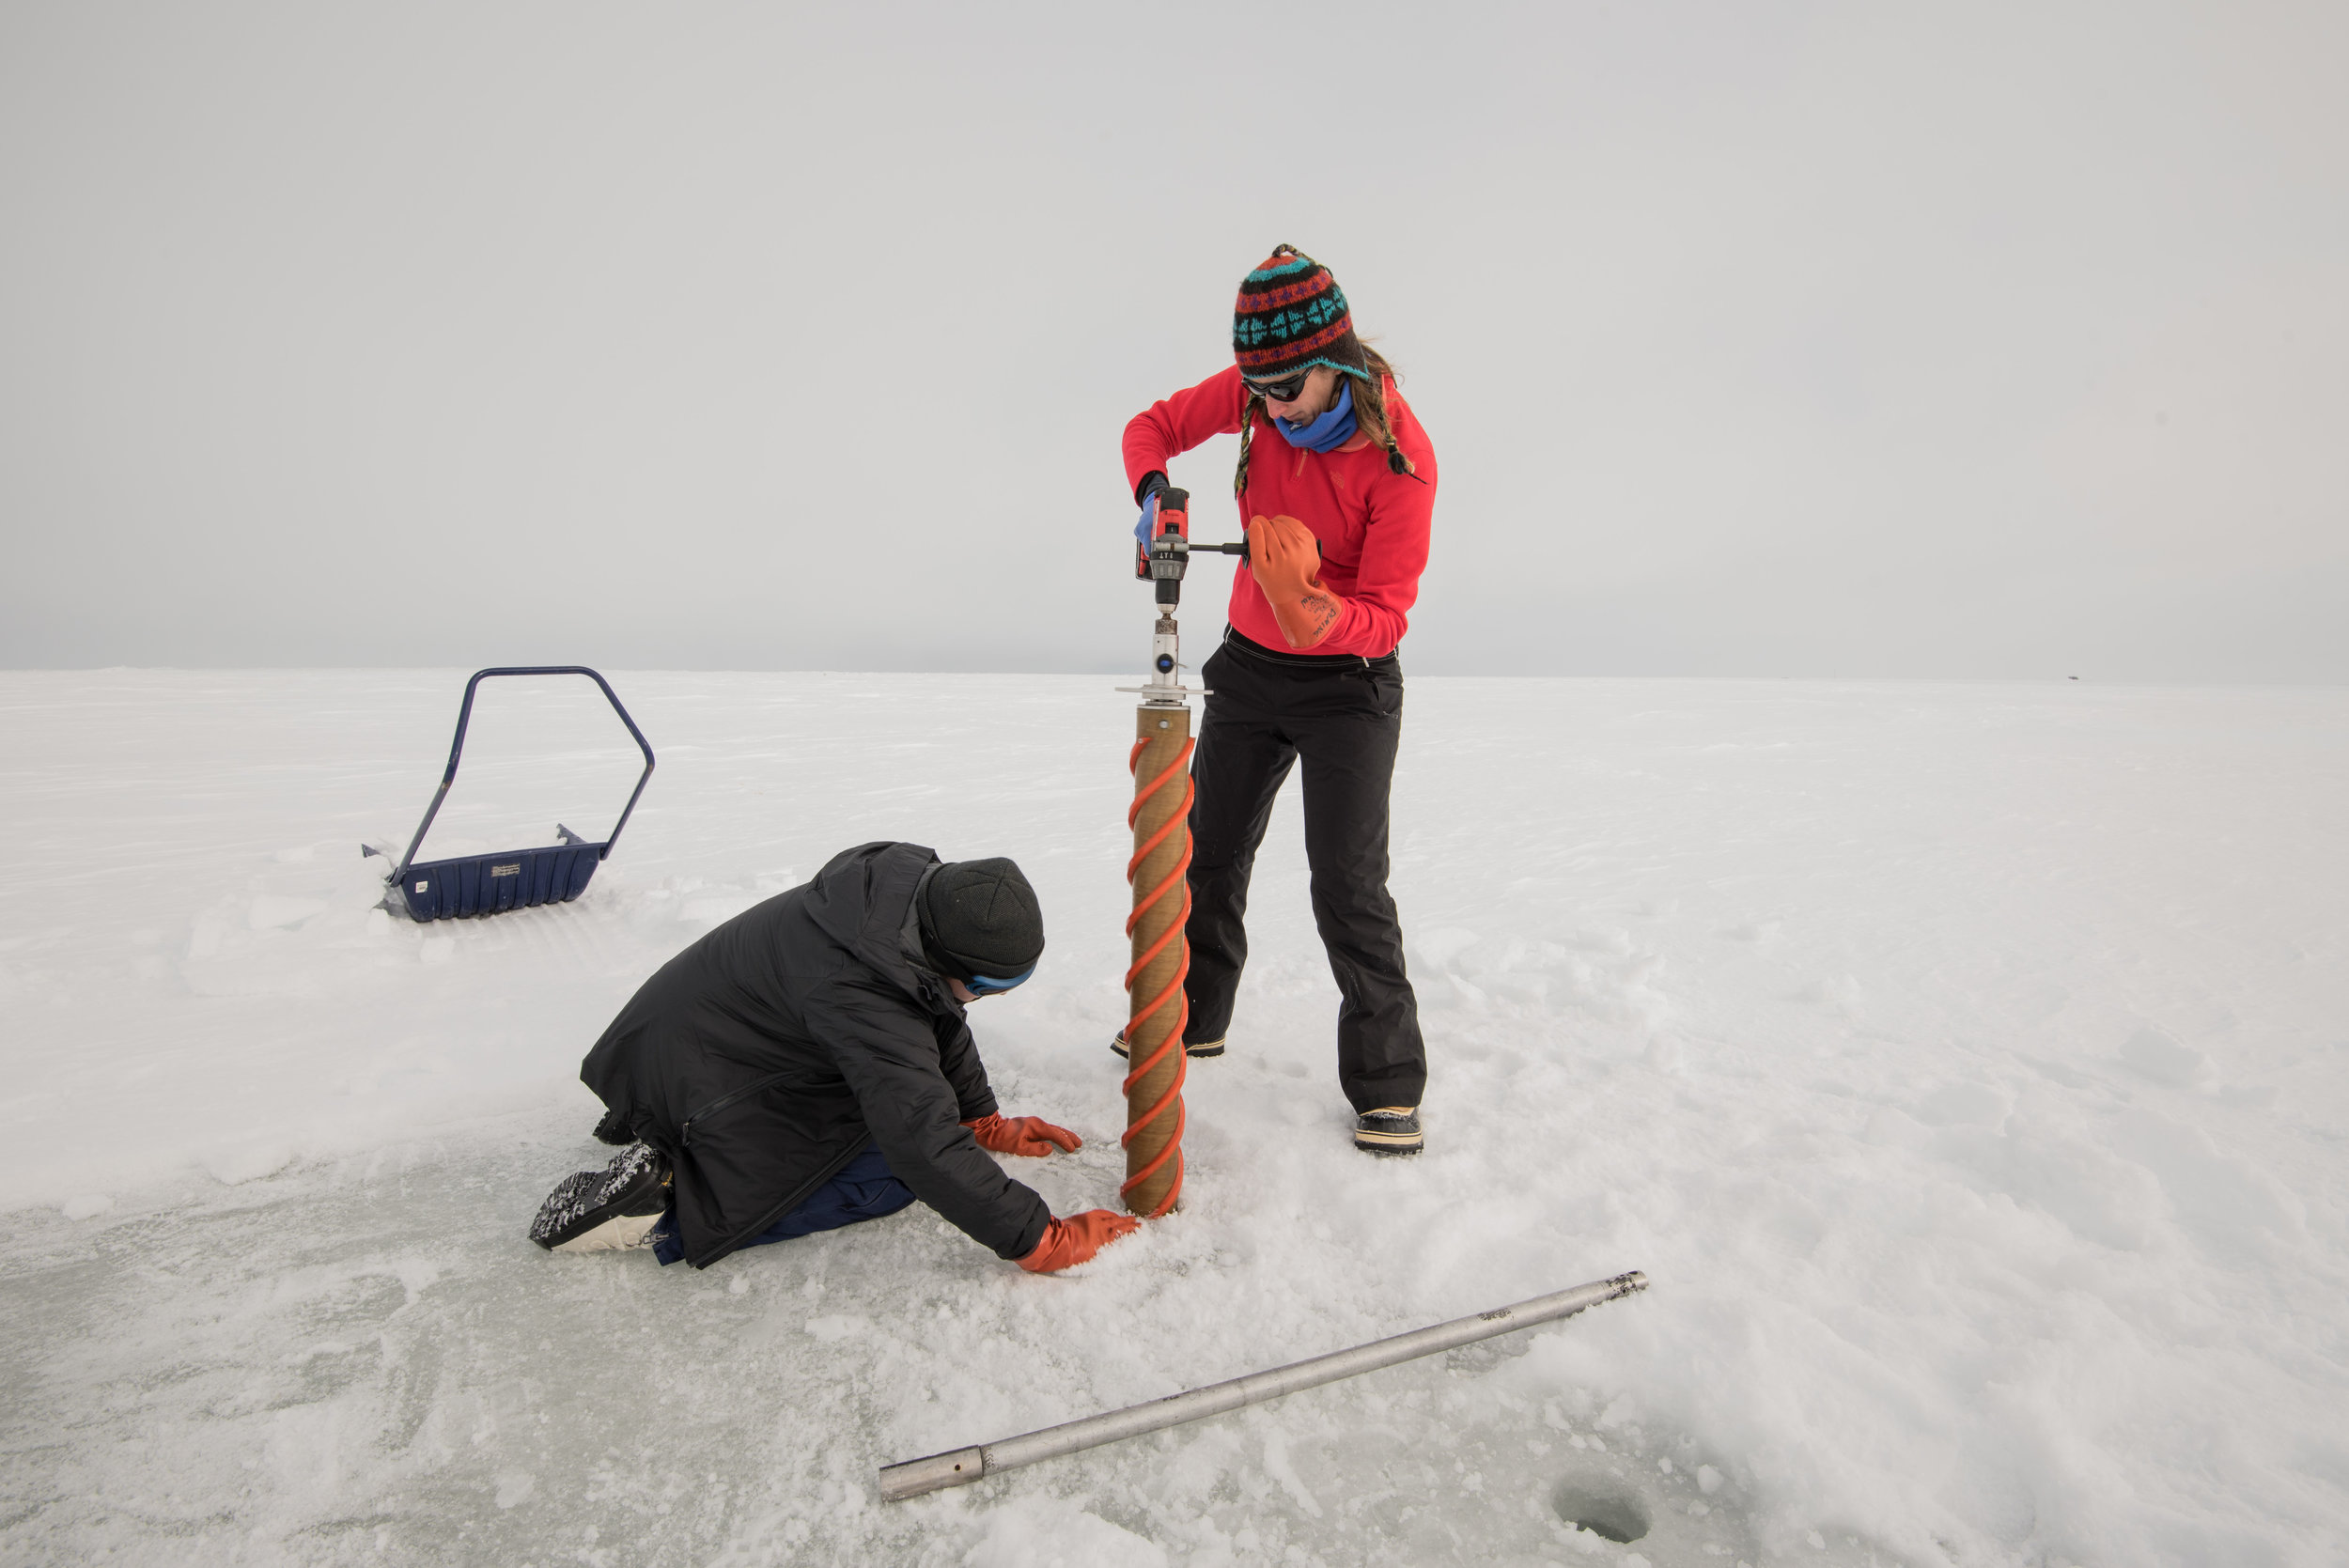 Jodi Young and Hannah Dawson drilling through some sea ice. Photo credit: A. Torstensson